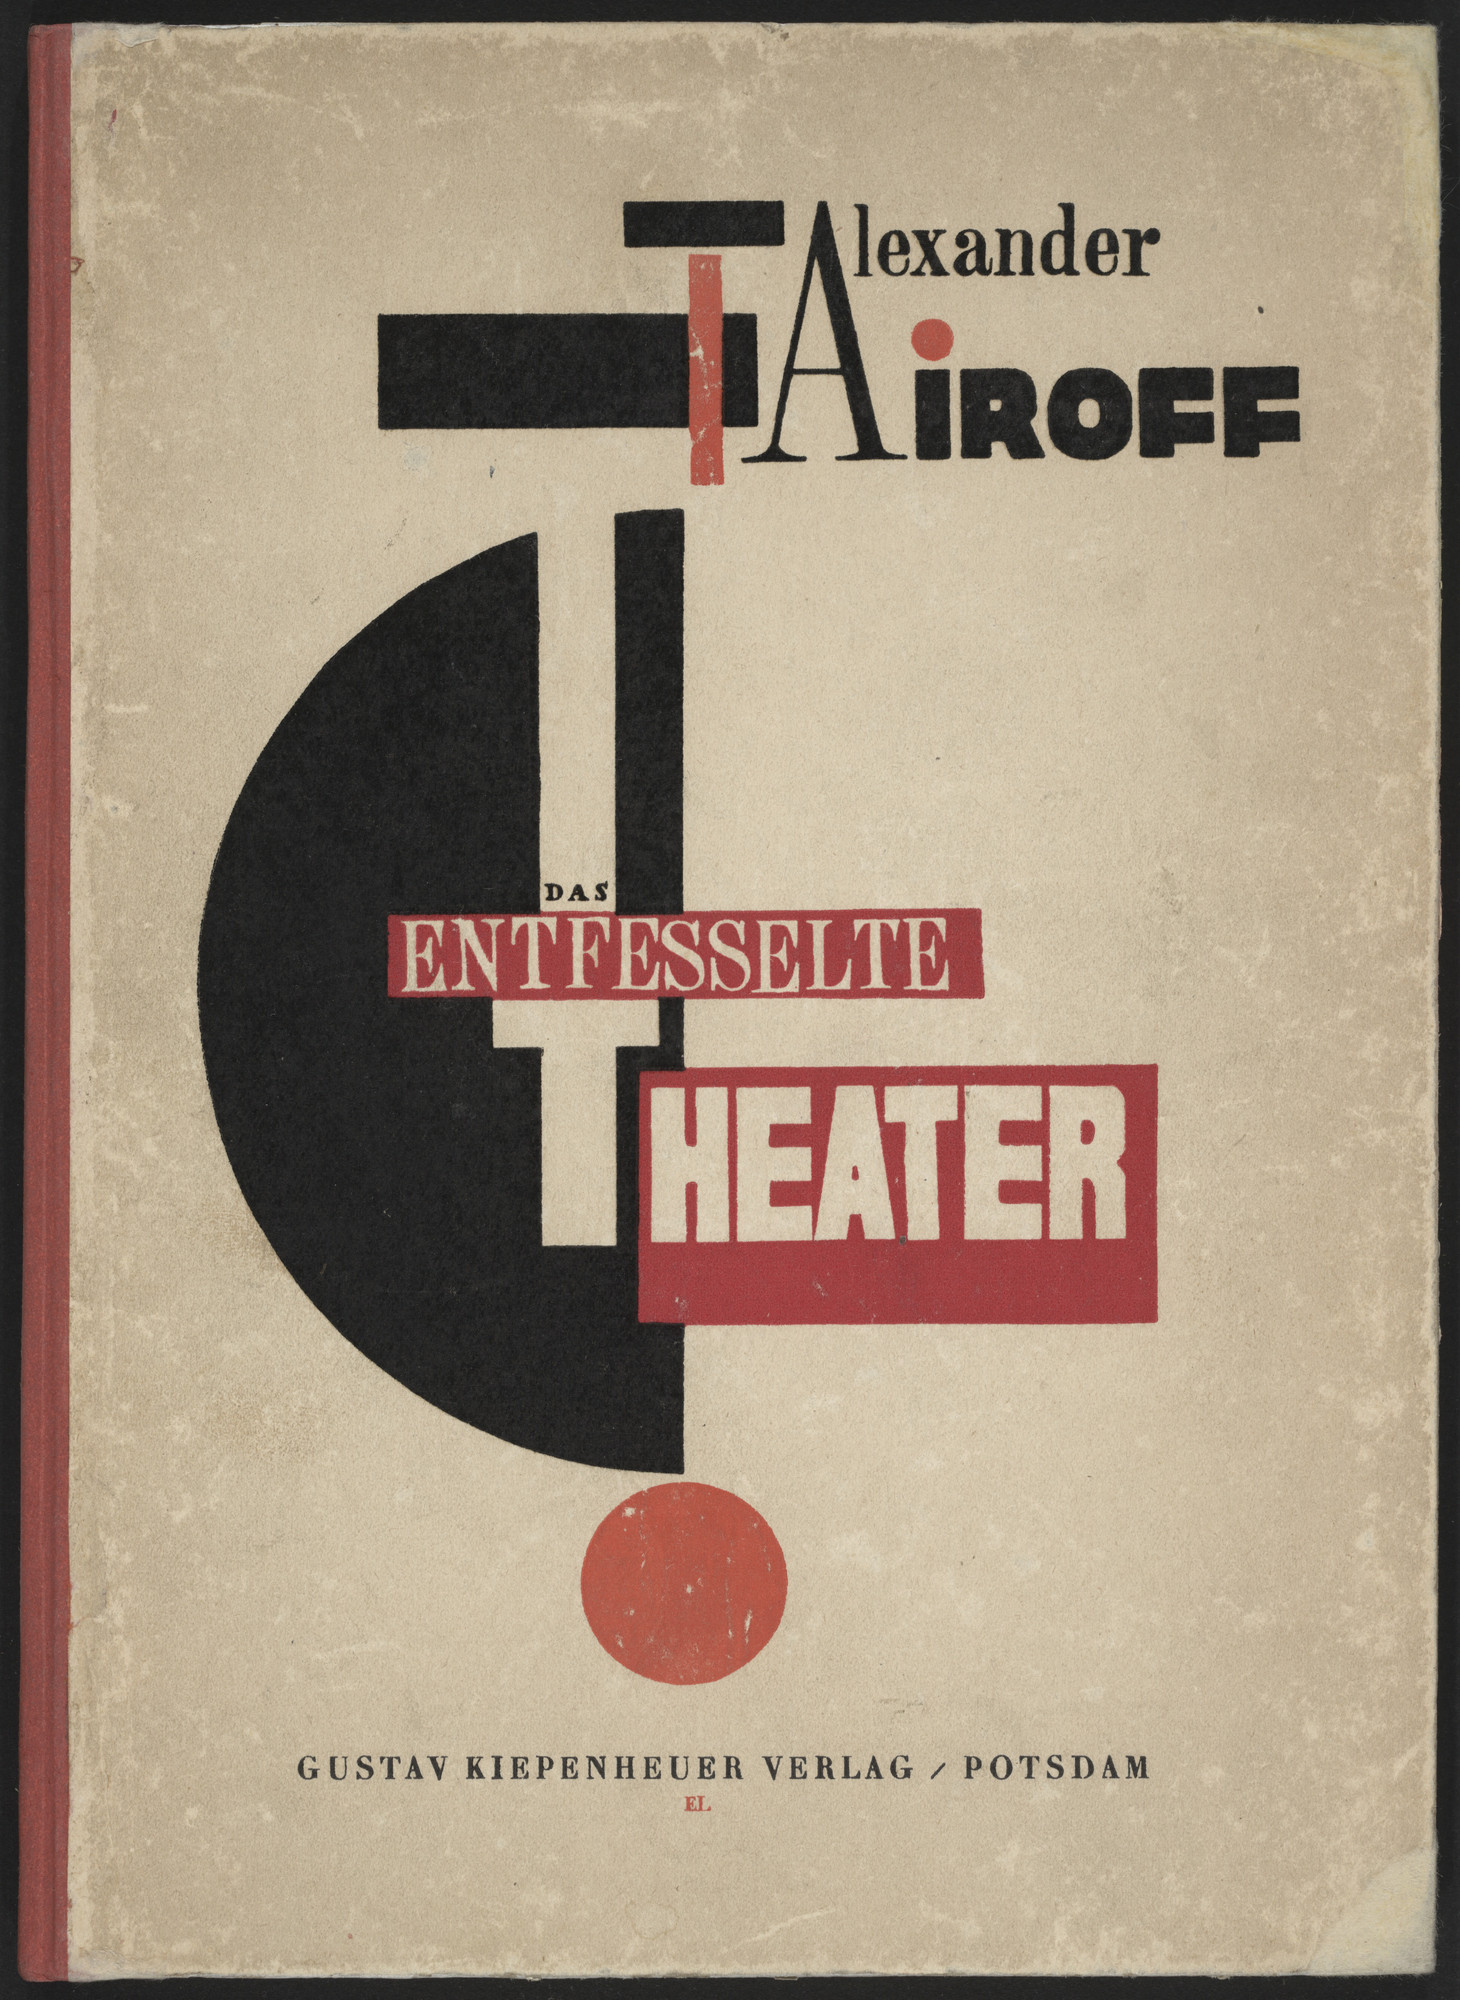 El Lissitzky. Das Entfesselte Theater (The Theater Unbound). 1923